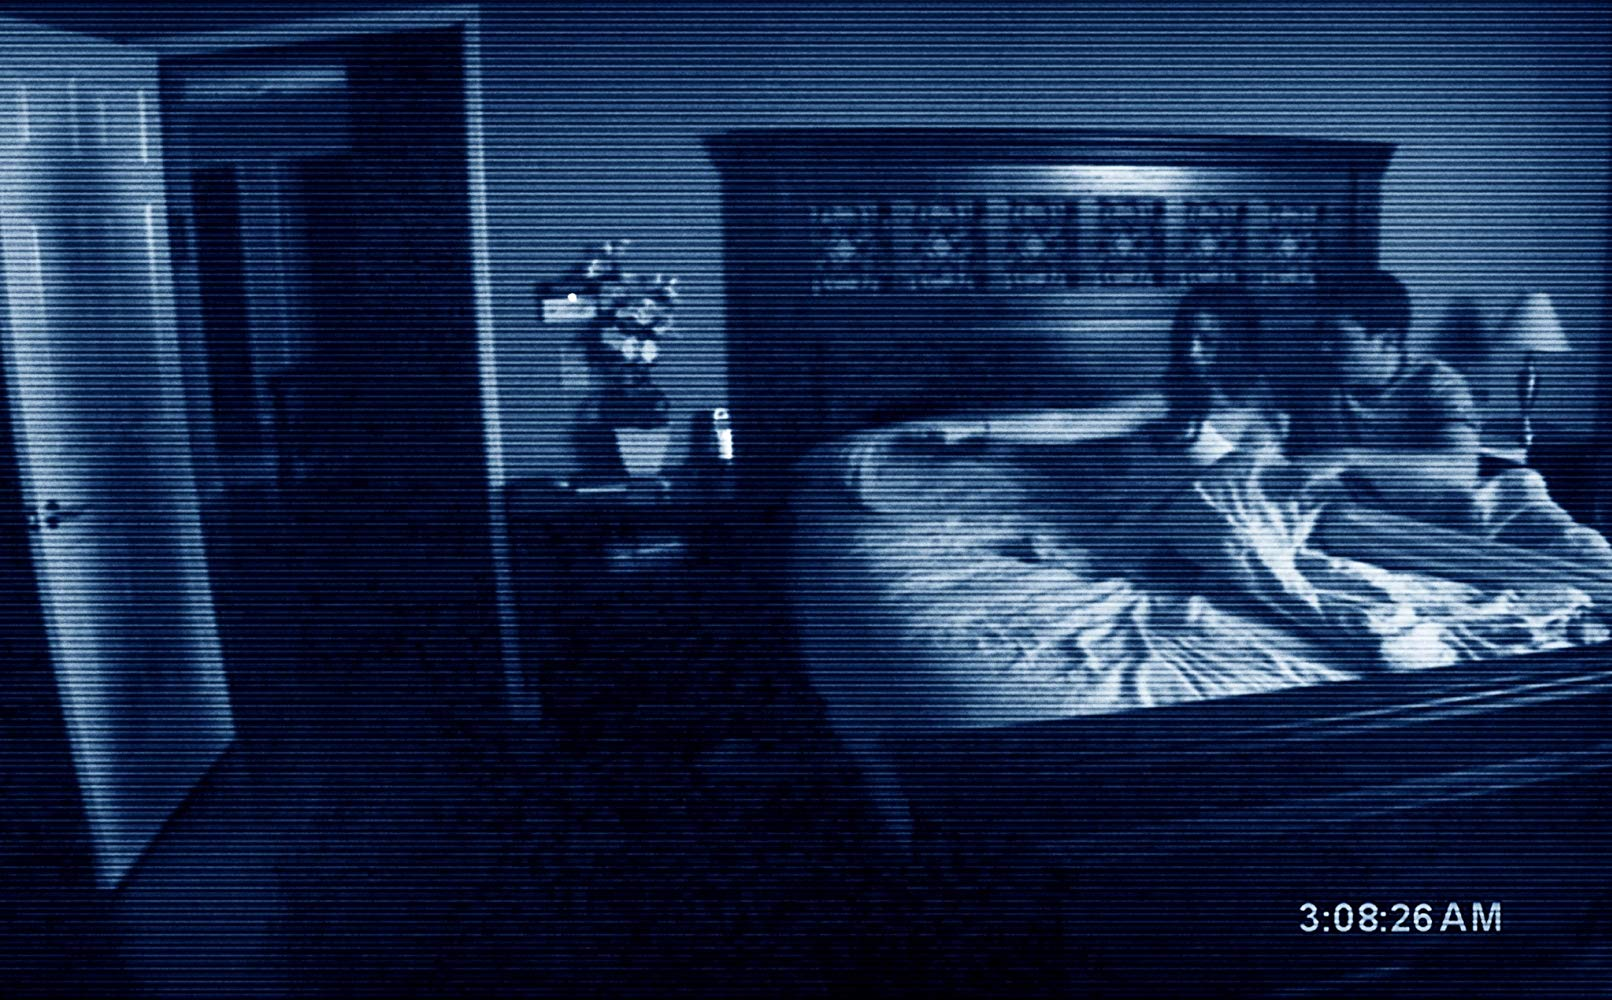 Article: Ranking All The PARANORMAL ACTIVITY Movies